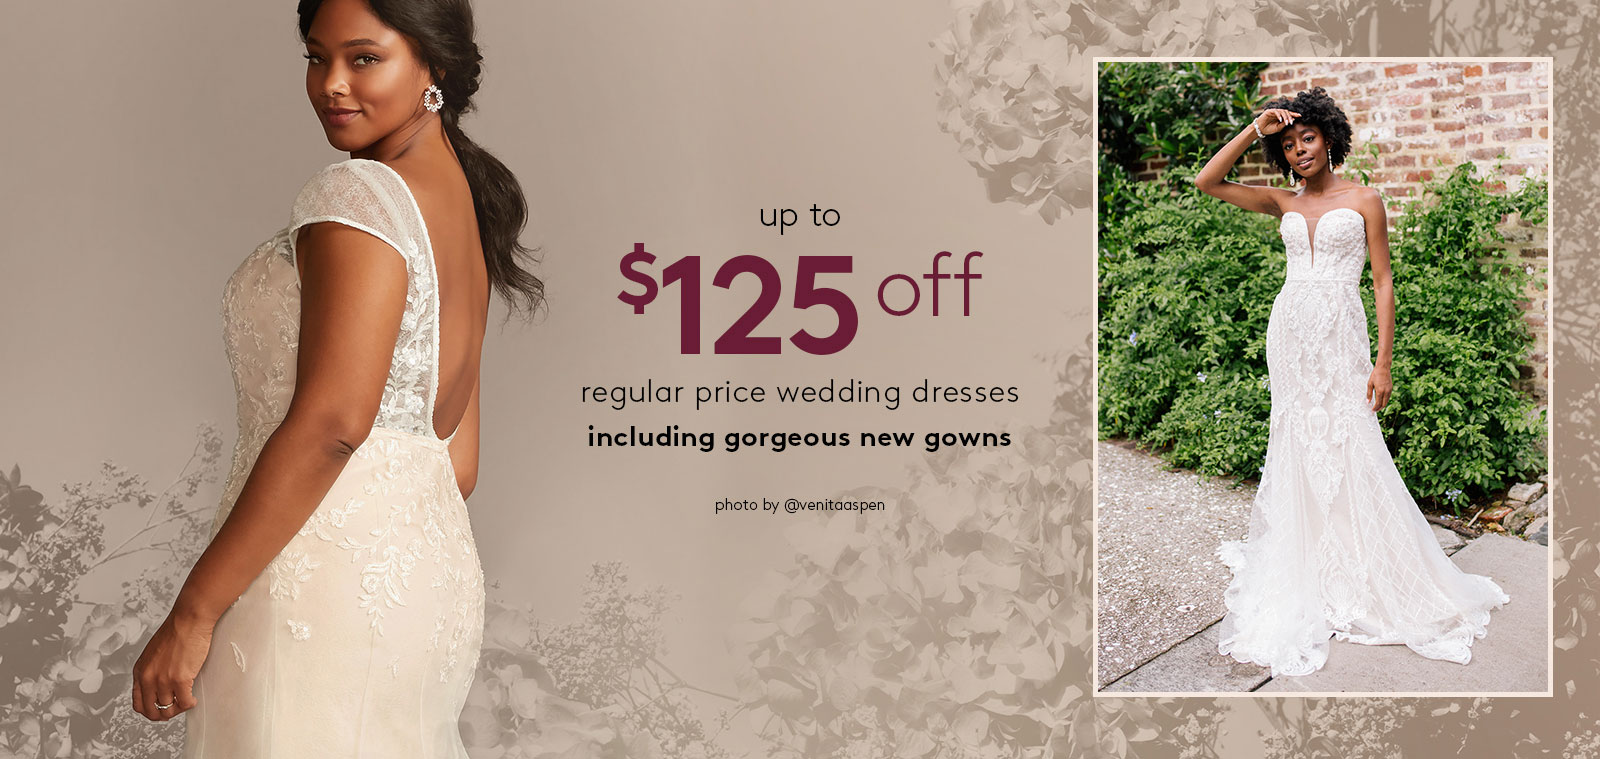 fourth of july sale - up to $125 off regular price wedding dresses - including gorgeous new gowns